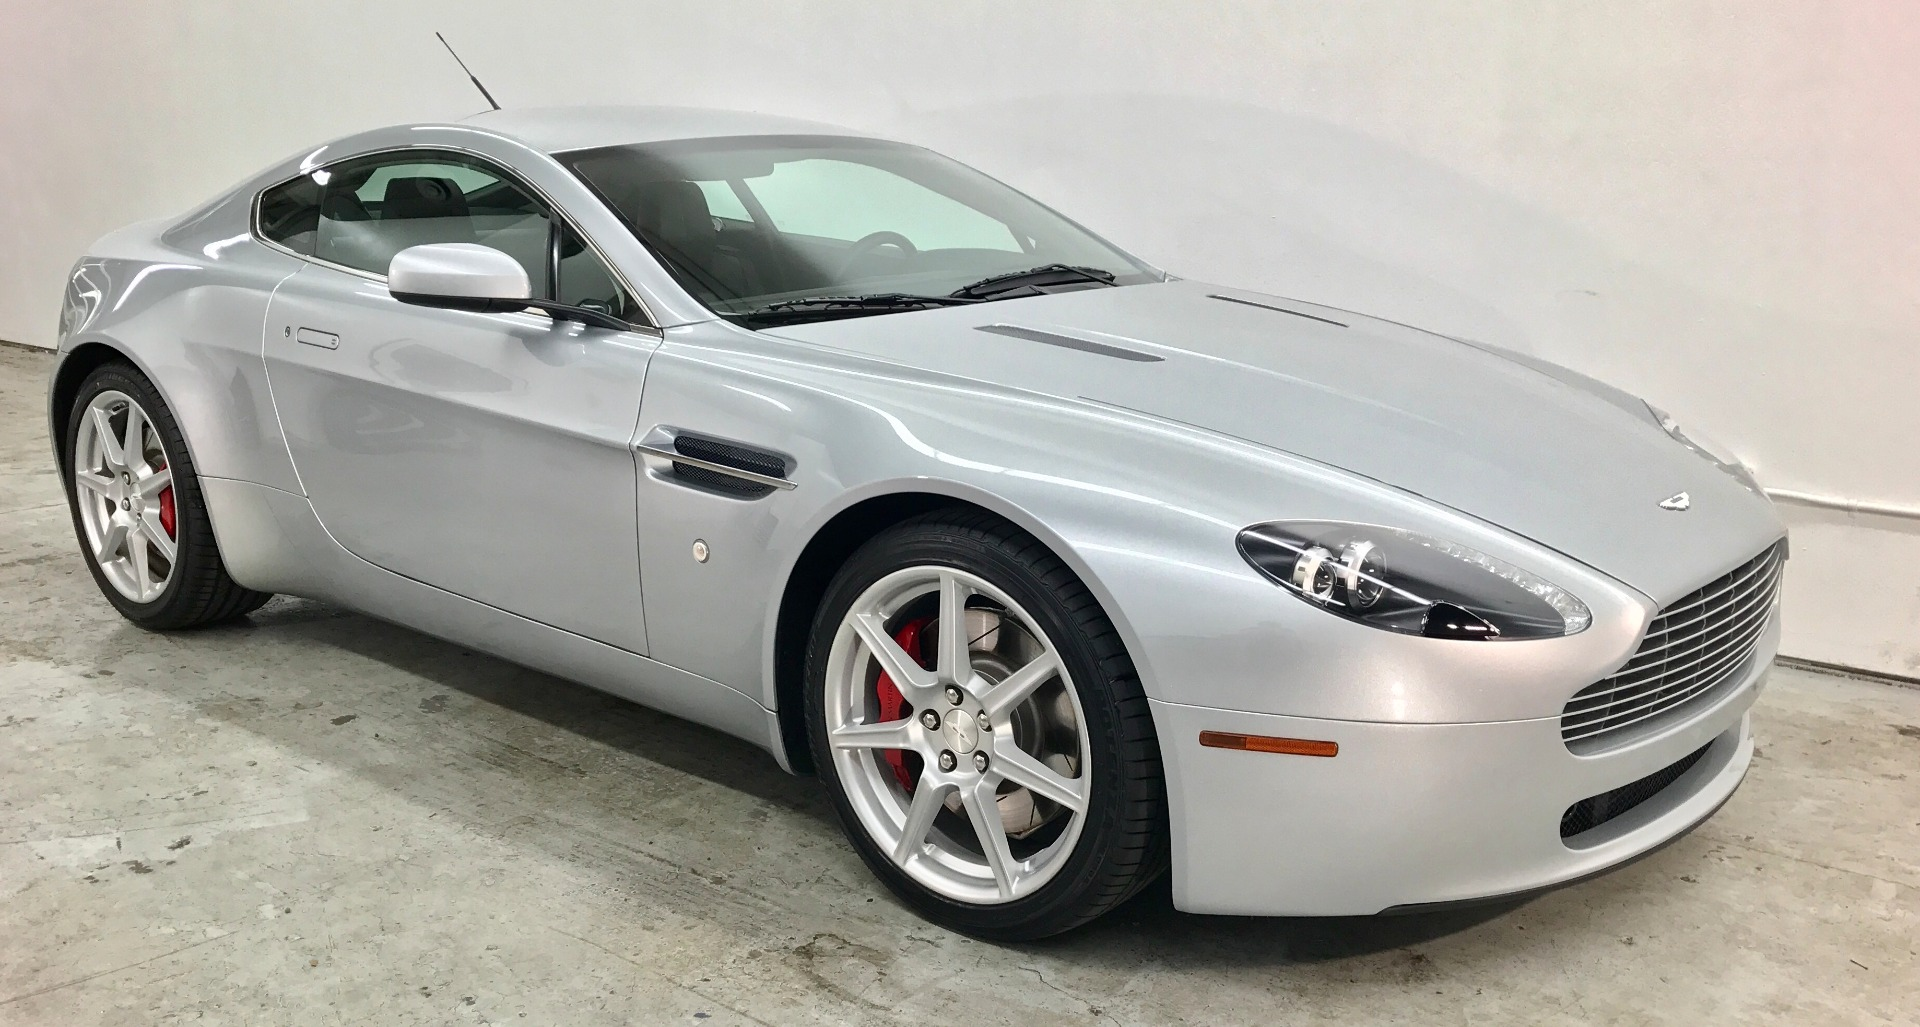 2007 aston martin v8 vantage stock 36 for sale near mountain view ca ca aston martin dealer. Black Bedroom Furniture Sets. Home Design Ideas